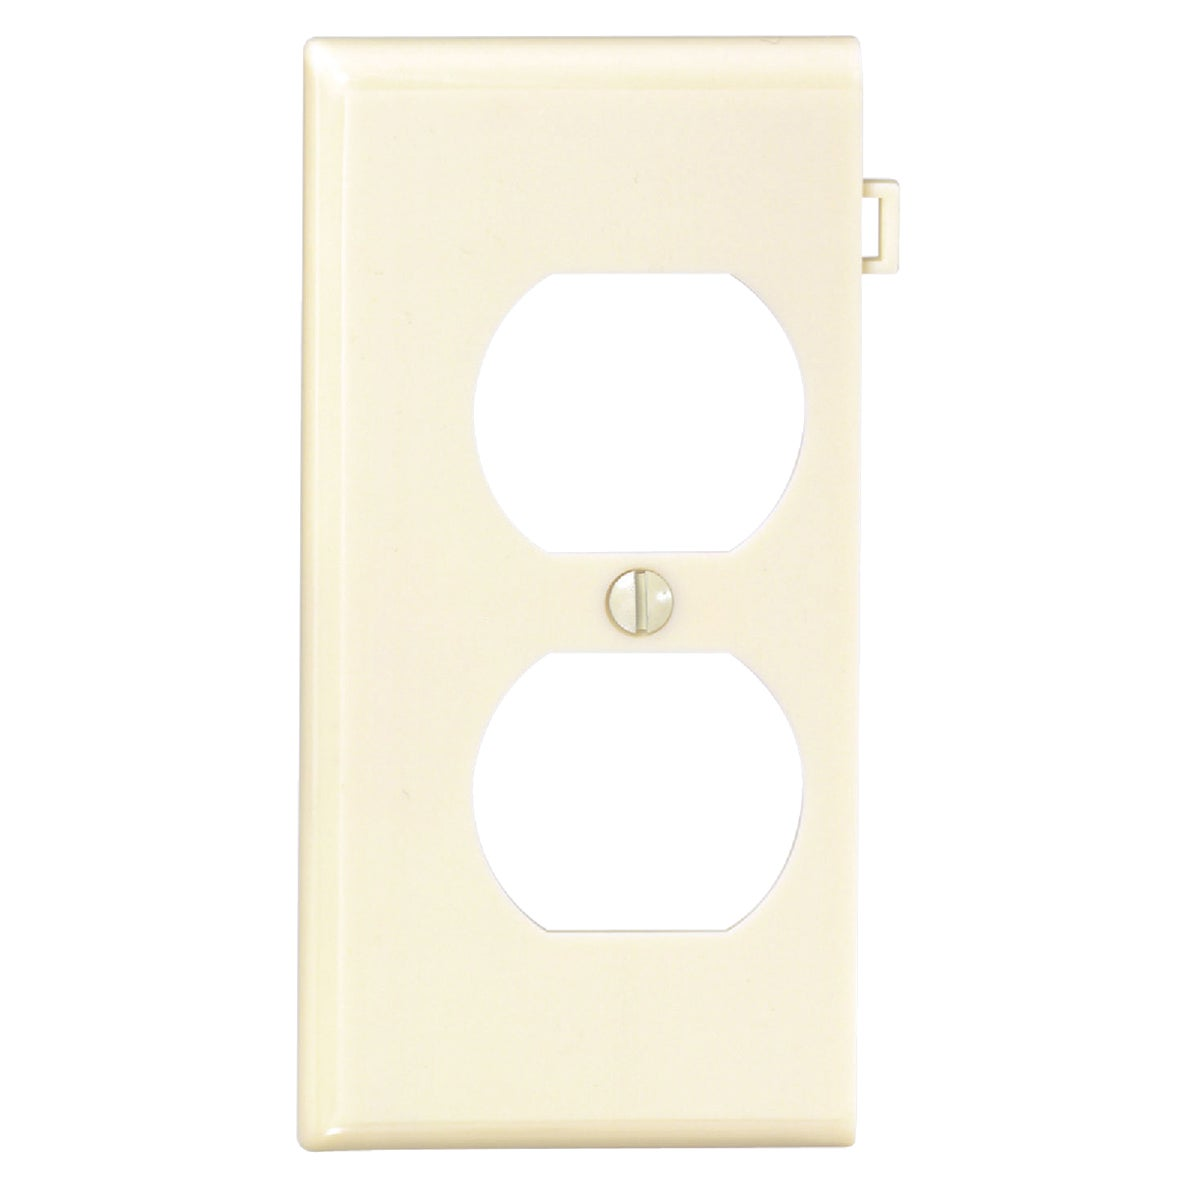 IV DUPLEX END PLATE - 924-0PSE8-I by Leviton Mfg Co